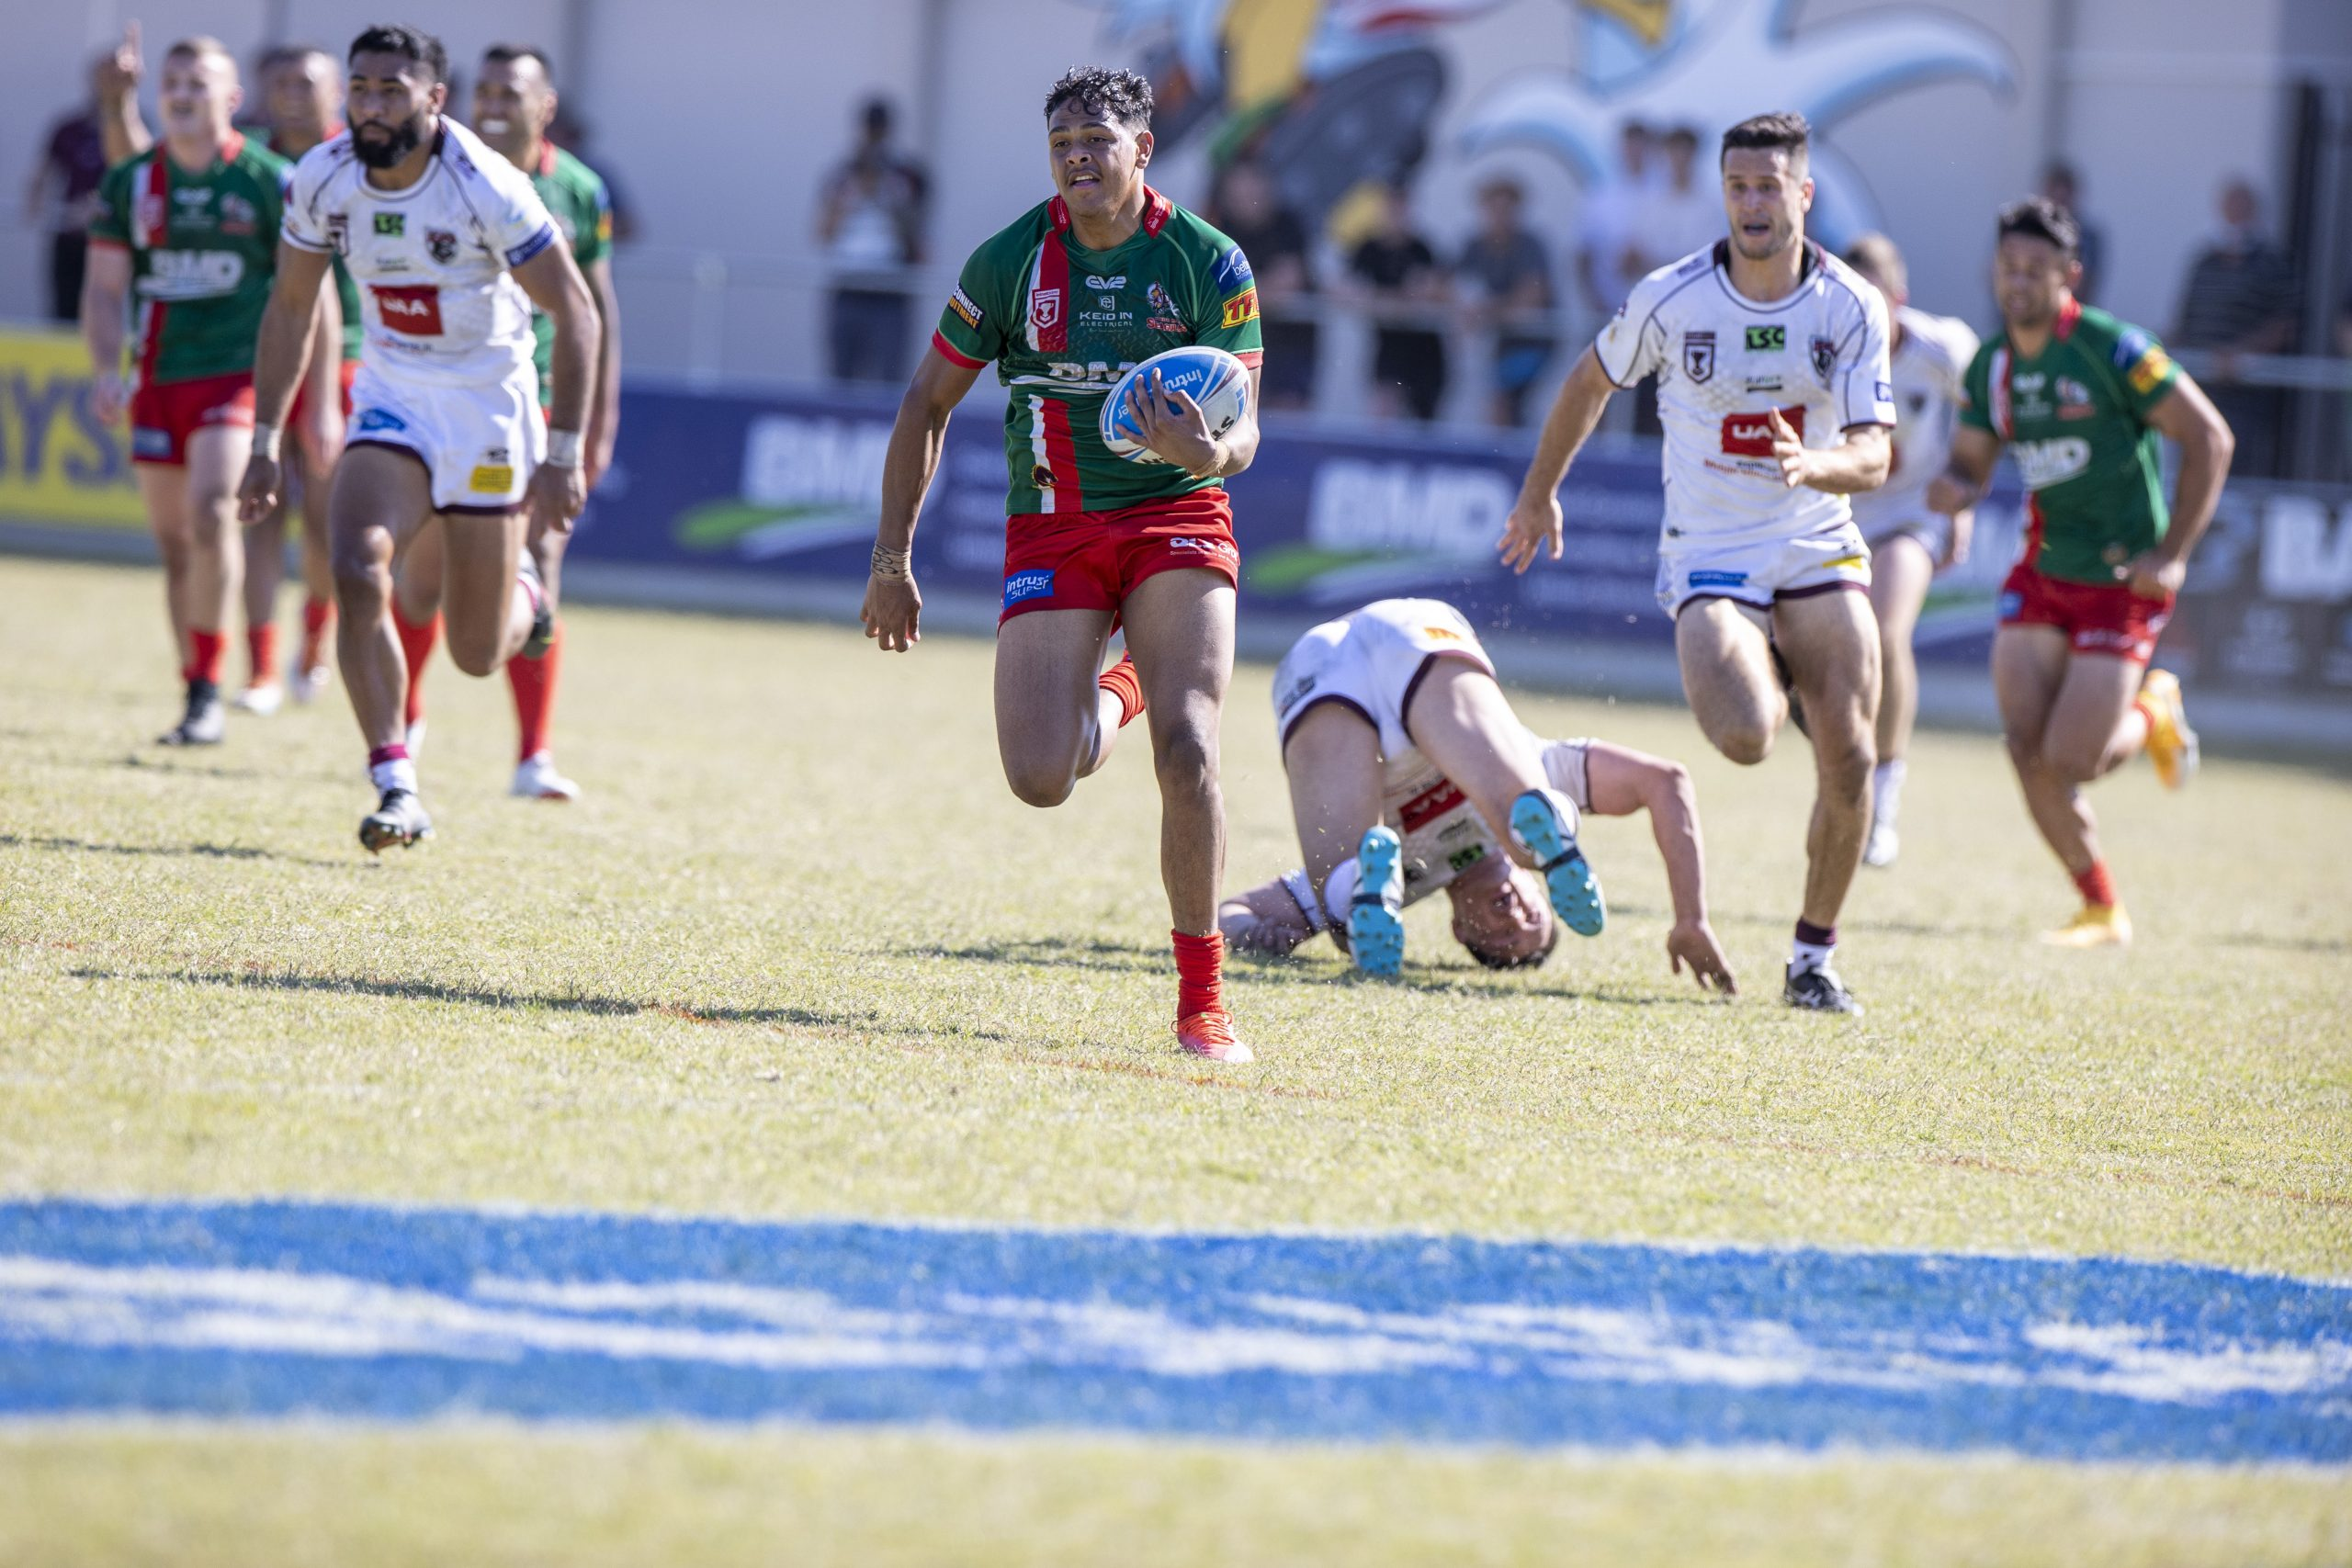 Wynnum Manly Seagulls overcome the Burleigh Bears to progress in finals